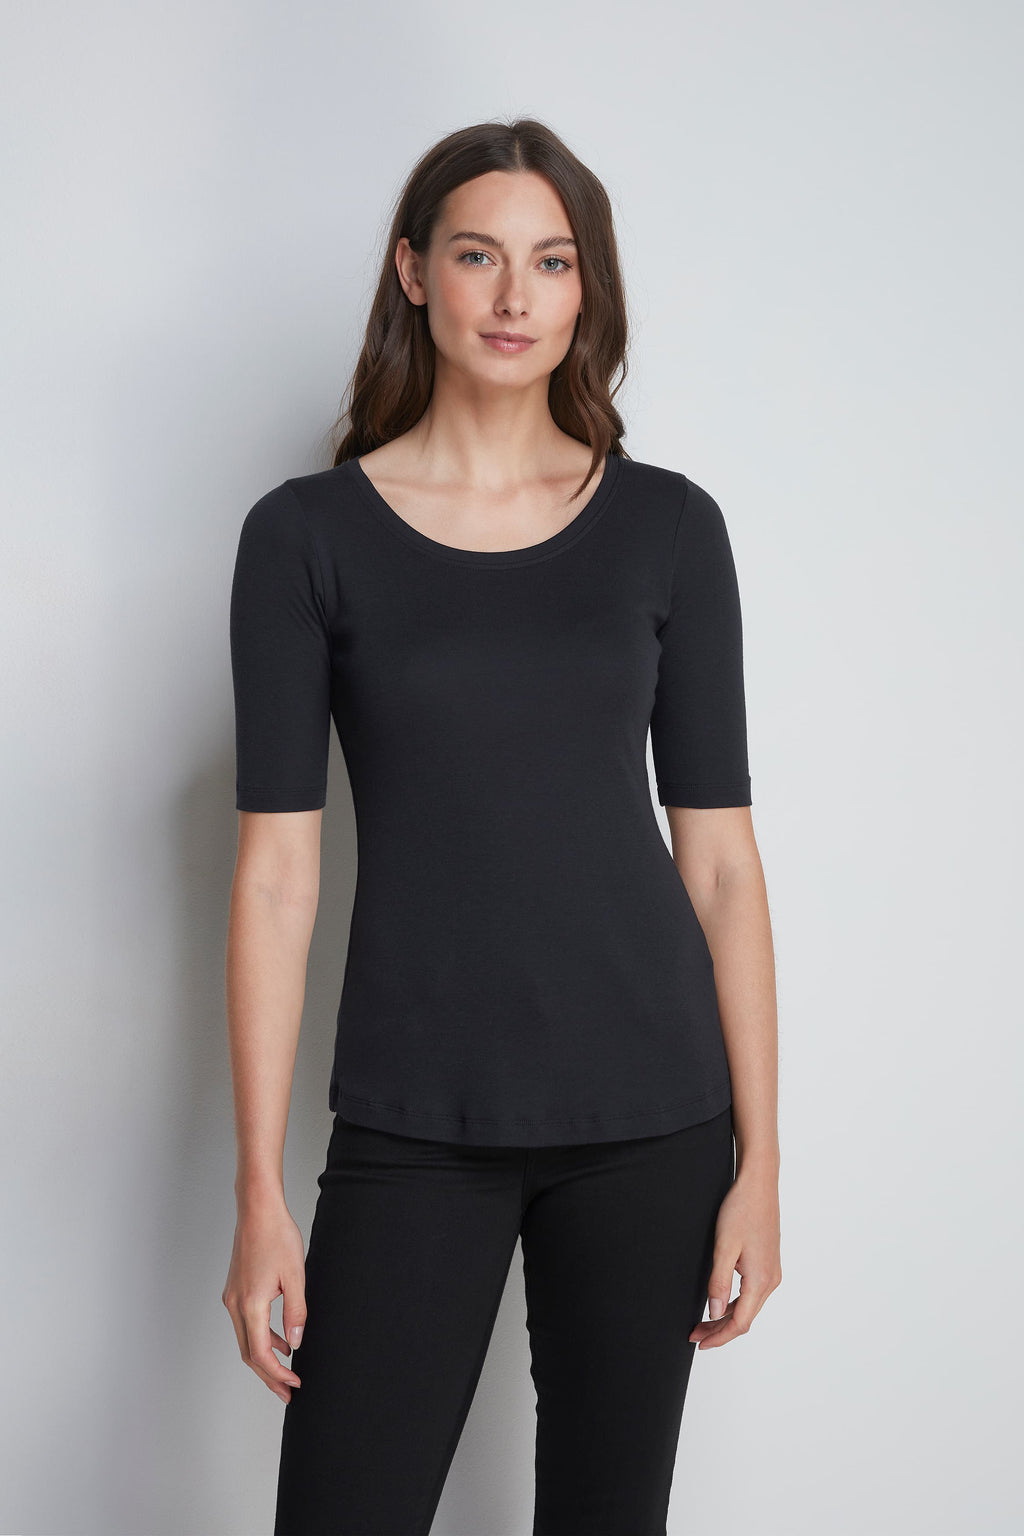 Mid-Weight Flattering Half Sleeve Black Scoop Neck T-Shirt - Quality Half Sleeve Scoop - Classic Silhouette